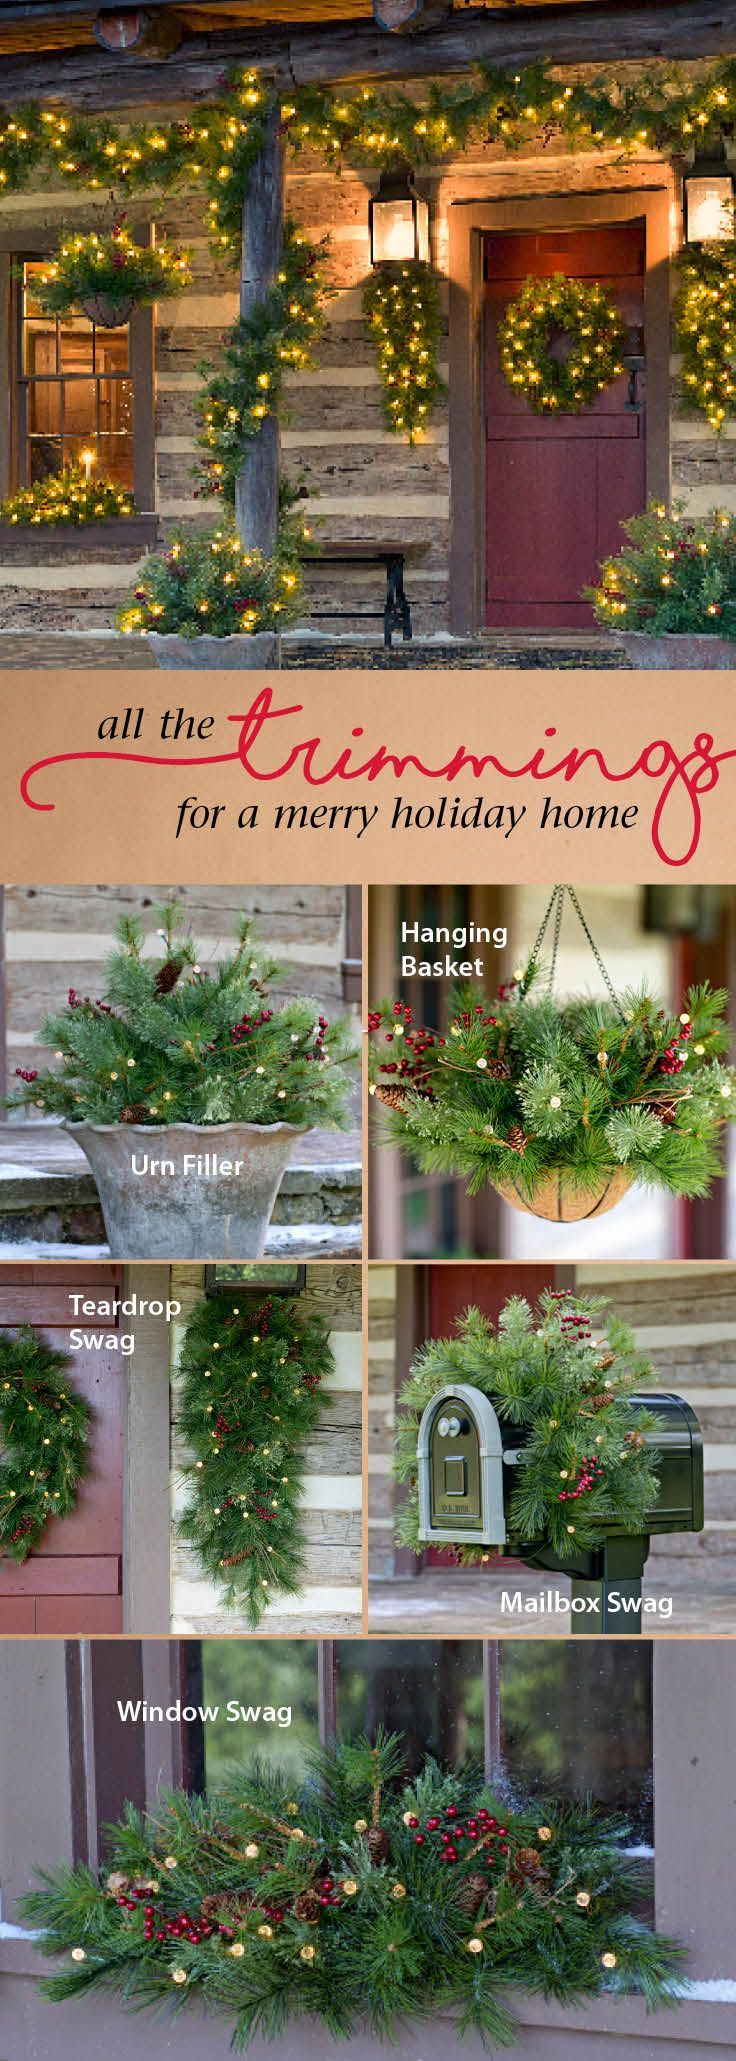 Deck the halls! All-weather holiday decor - easy and elegant. Like the look of everything. Maybe I can replicate it at a cheaper cost